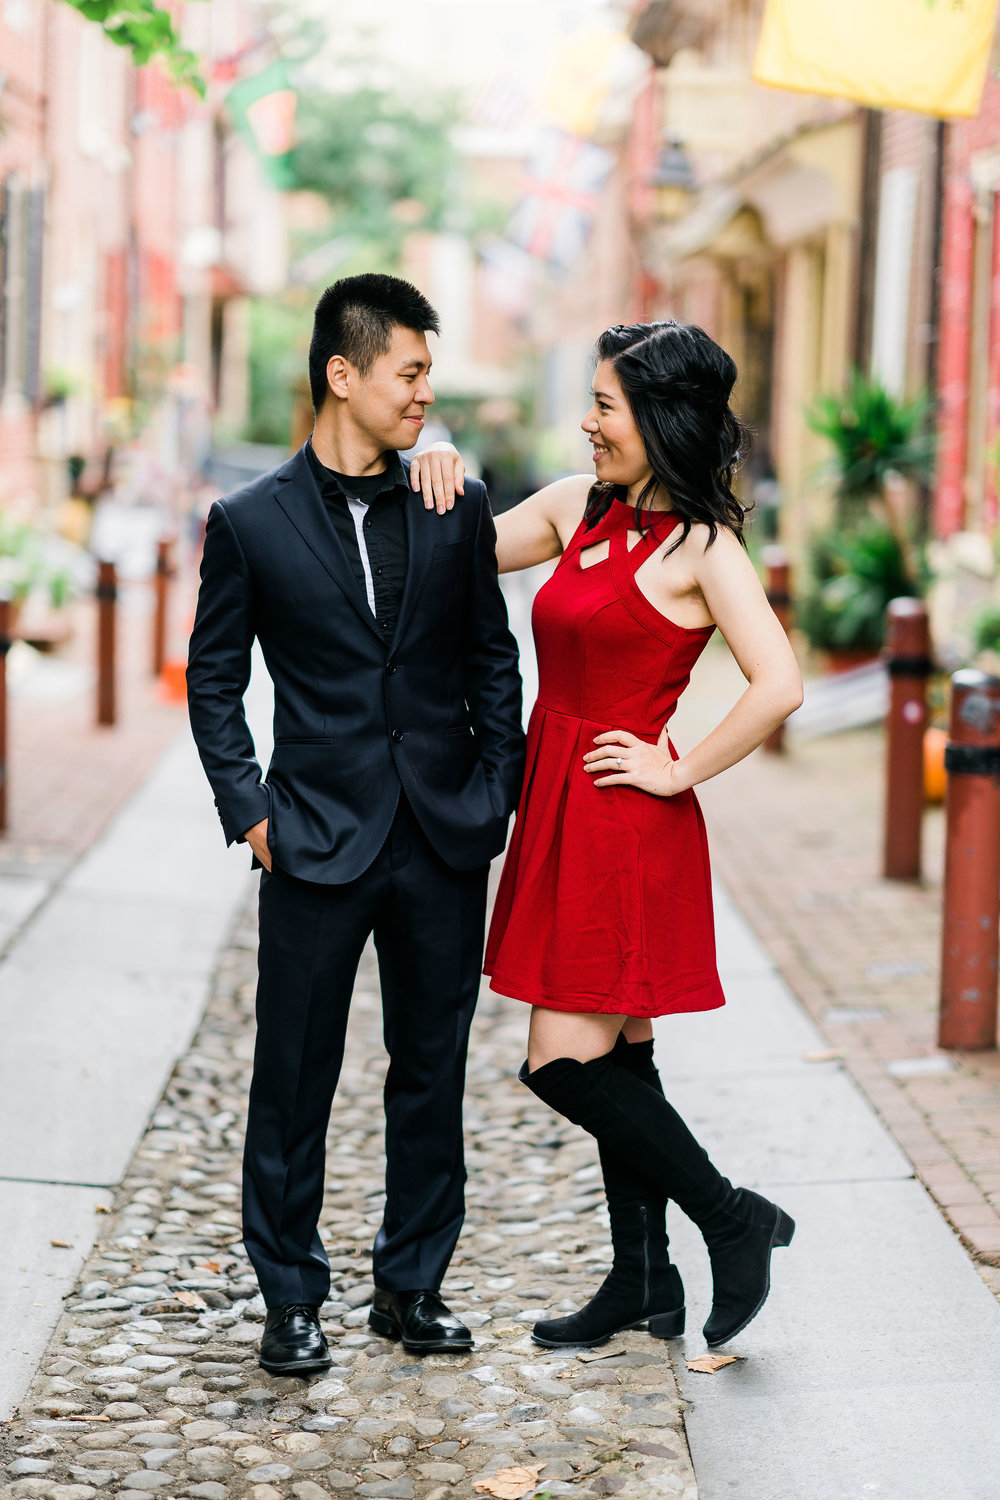 elfreths alley engagement shoot